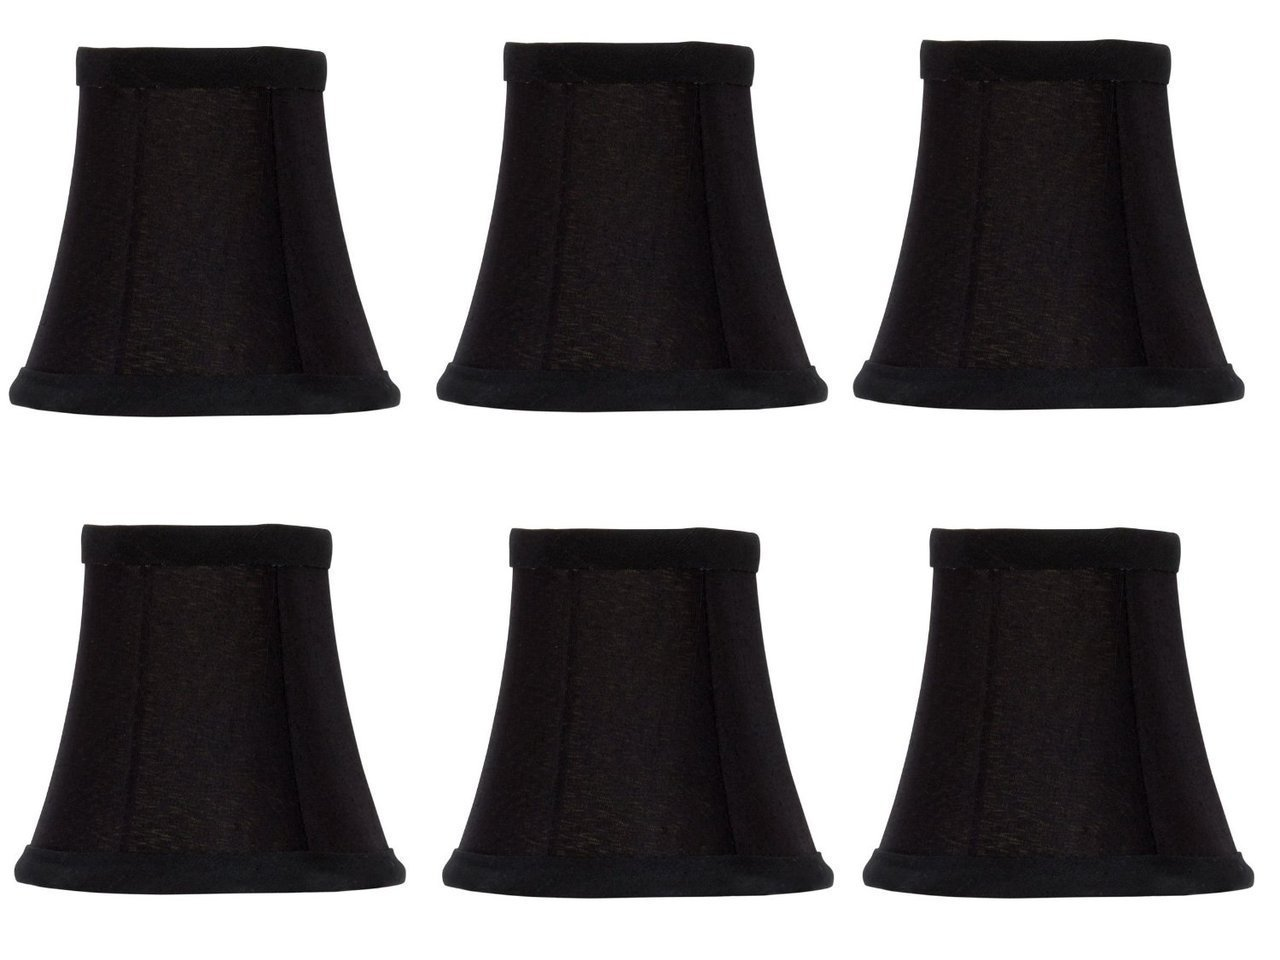 Upgradelights Black Silk with Gold Lining 6 Inch Chandelier Lamp Shades (Set of 6) 3x6x4.25